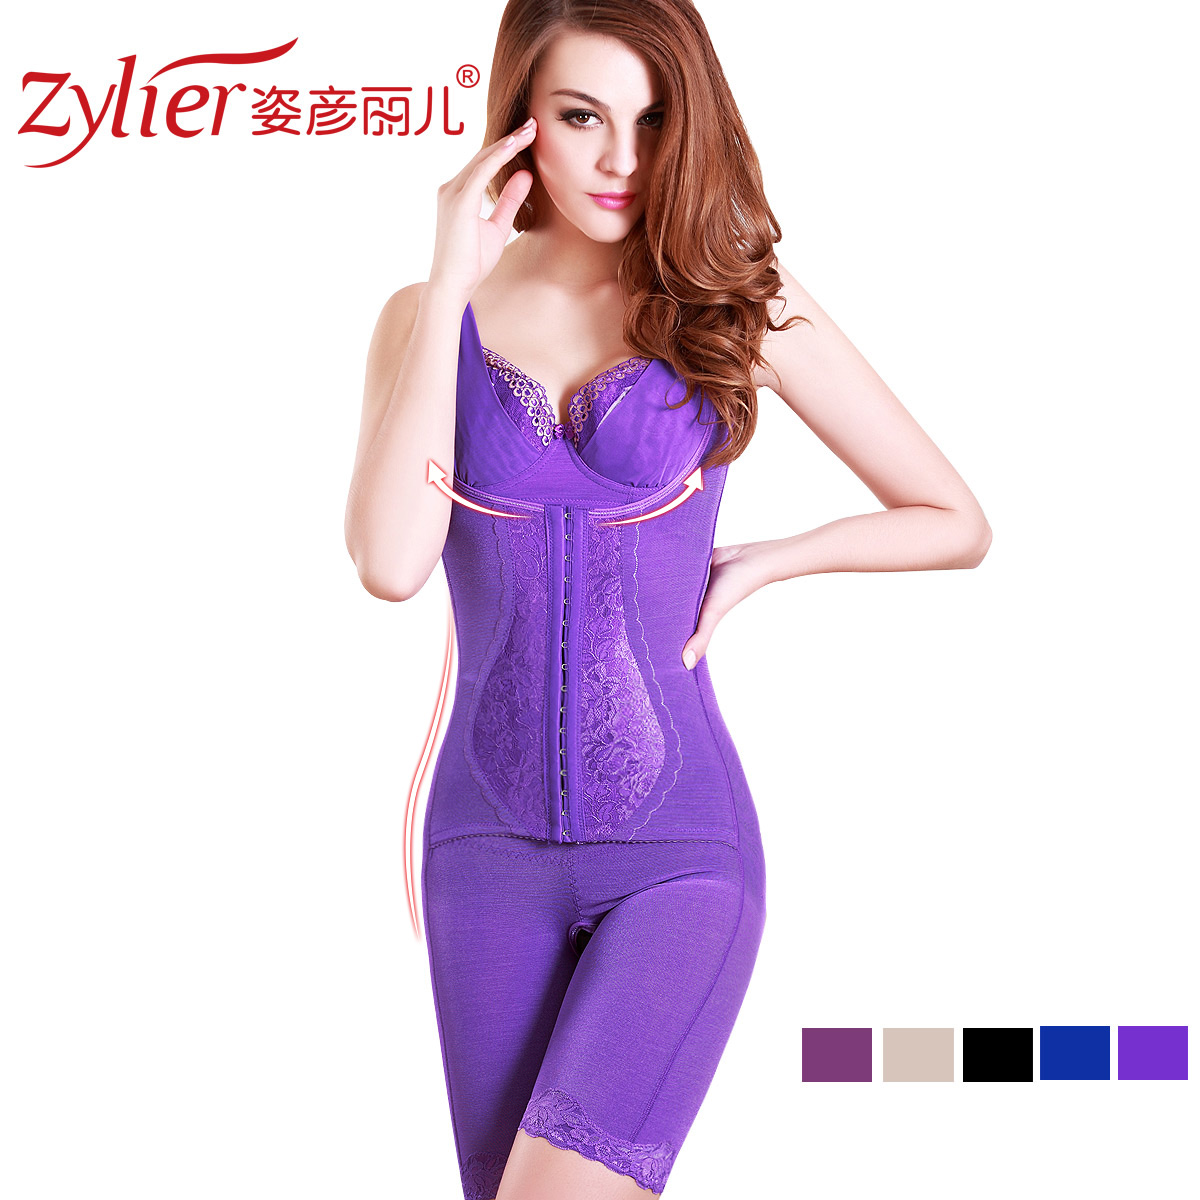 Queen attitude Yanli fiber thin stomach hip shaping garments Siamese beauty body clothes Shushen clothing lt108